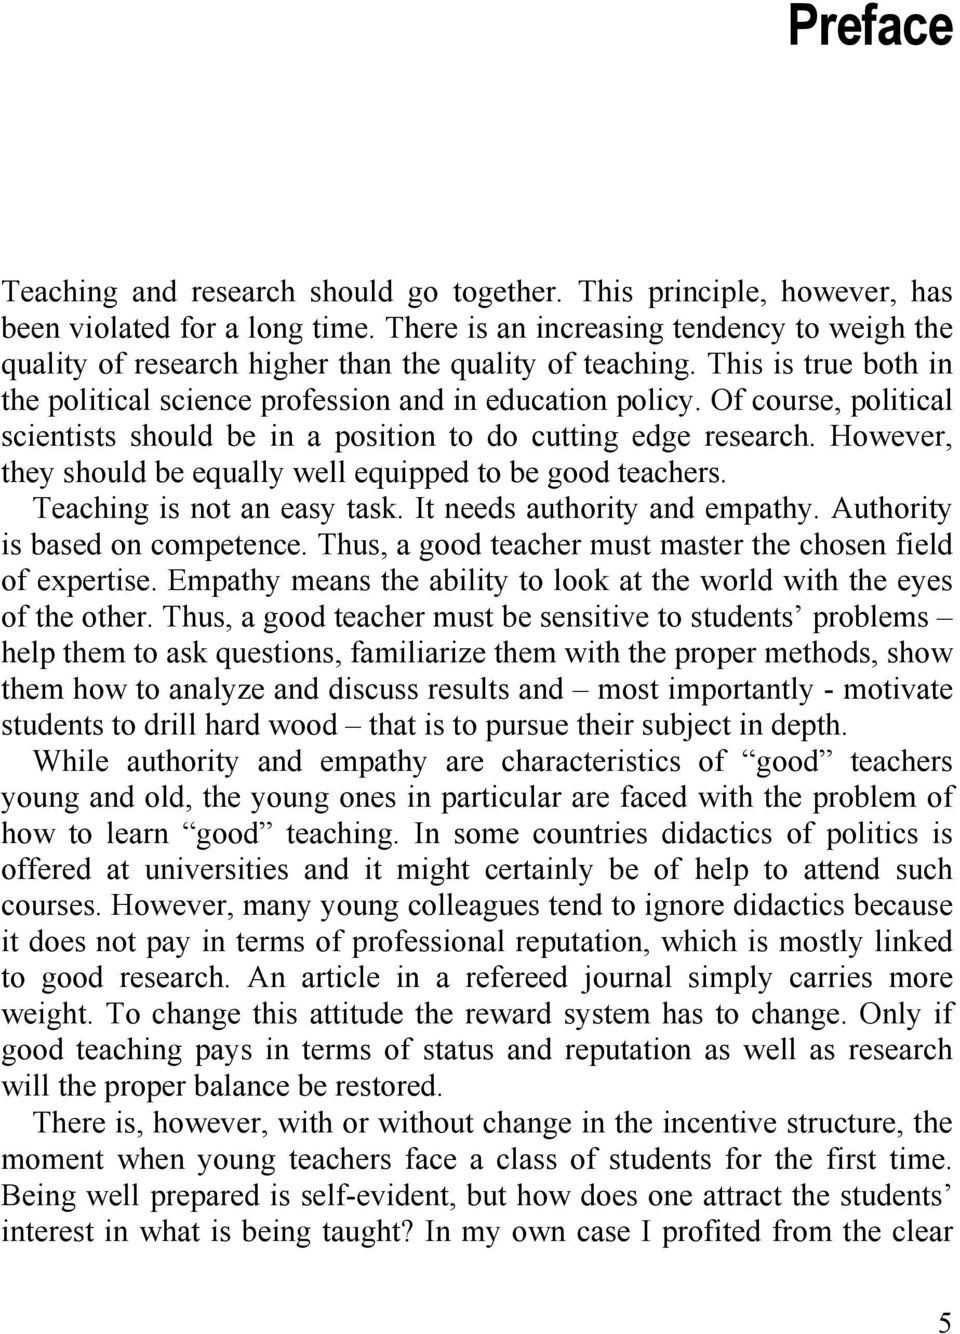 Of course, political scientists should be in a position to do cutting edge research. However, they should be equally well equipped to be good teachers. Teaching is not an easy task.